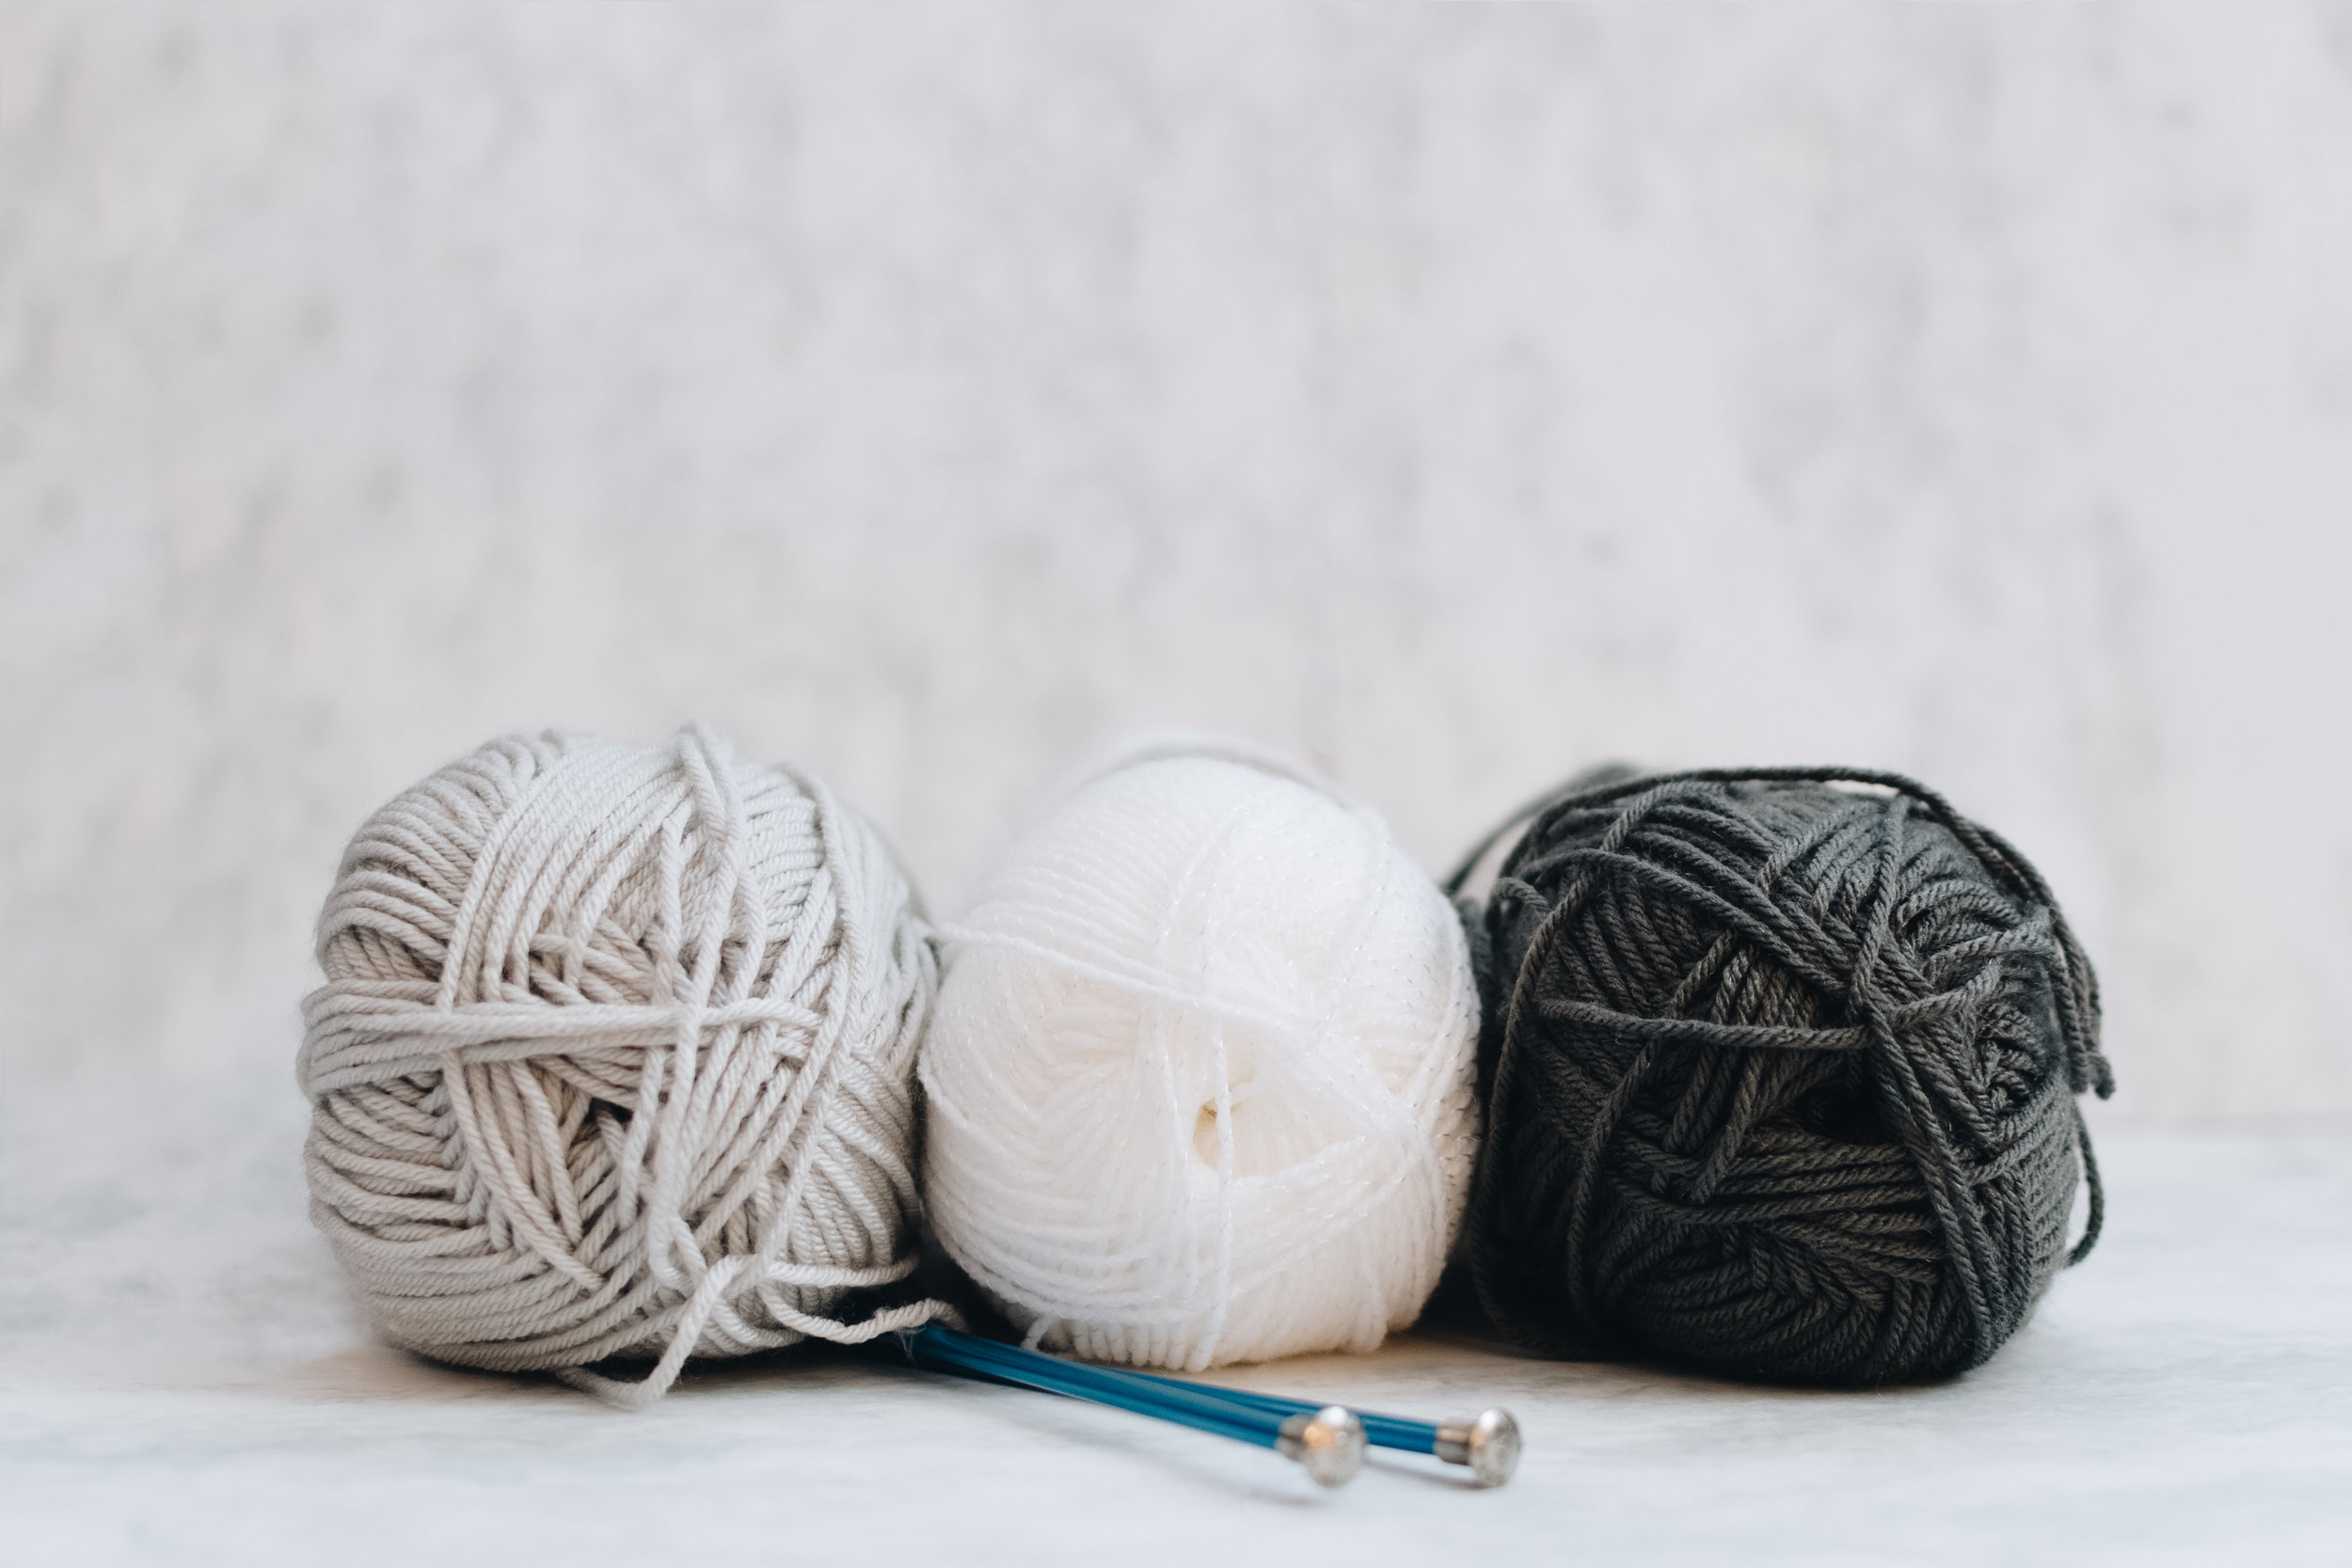 We want to see your Knitpicking creations! - Send us your finished Knitpicking pieces for your chance to be featured on our social media channels.